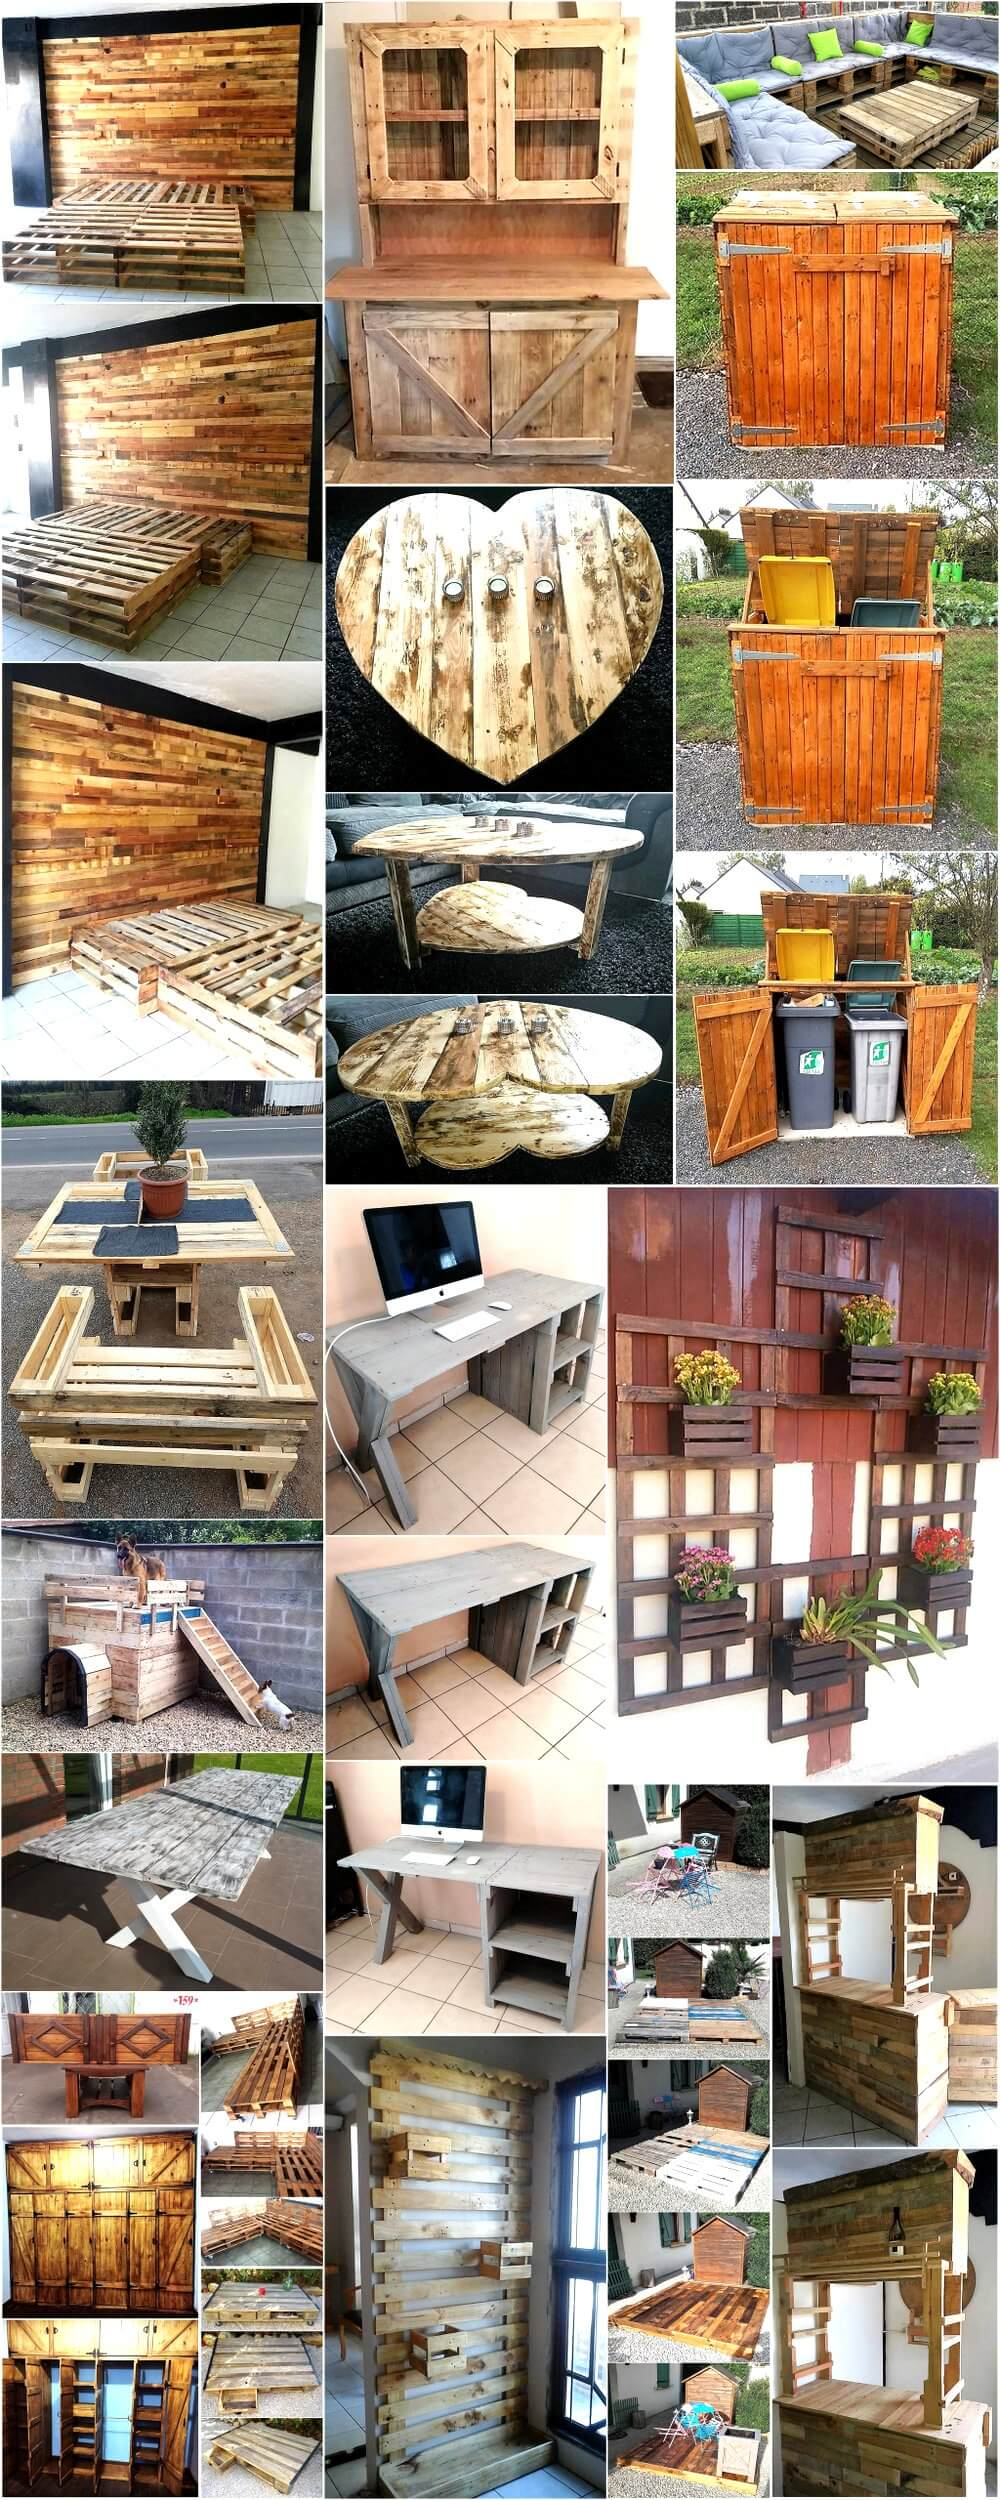 shipping pallet furniture ideas. Repurposing Ideas For Shipping Wood Pallets Pallet Furniture A